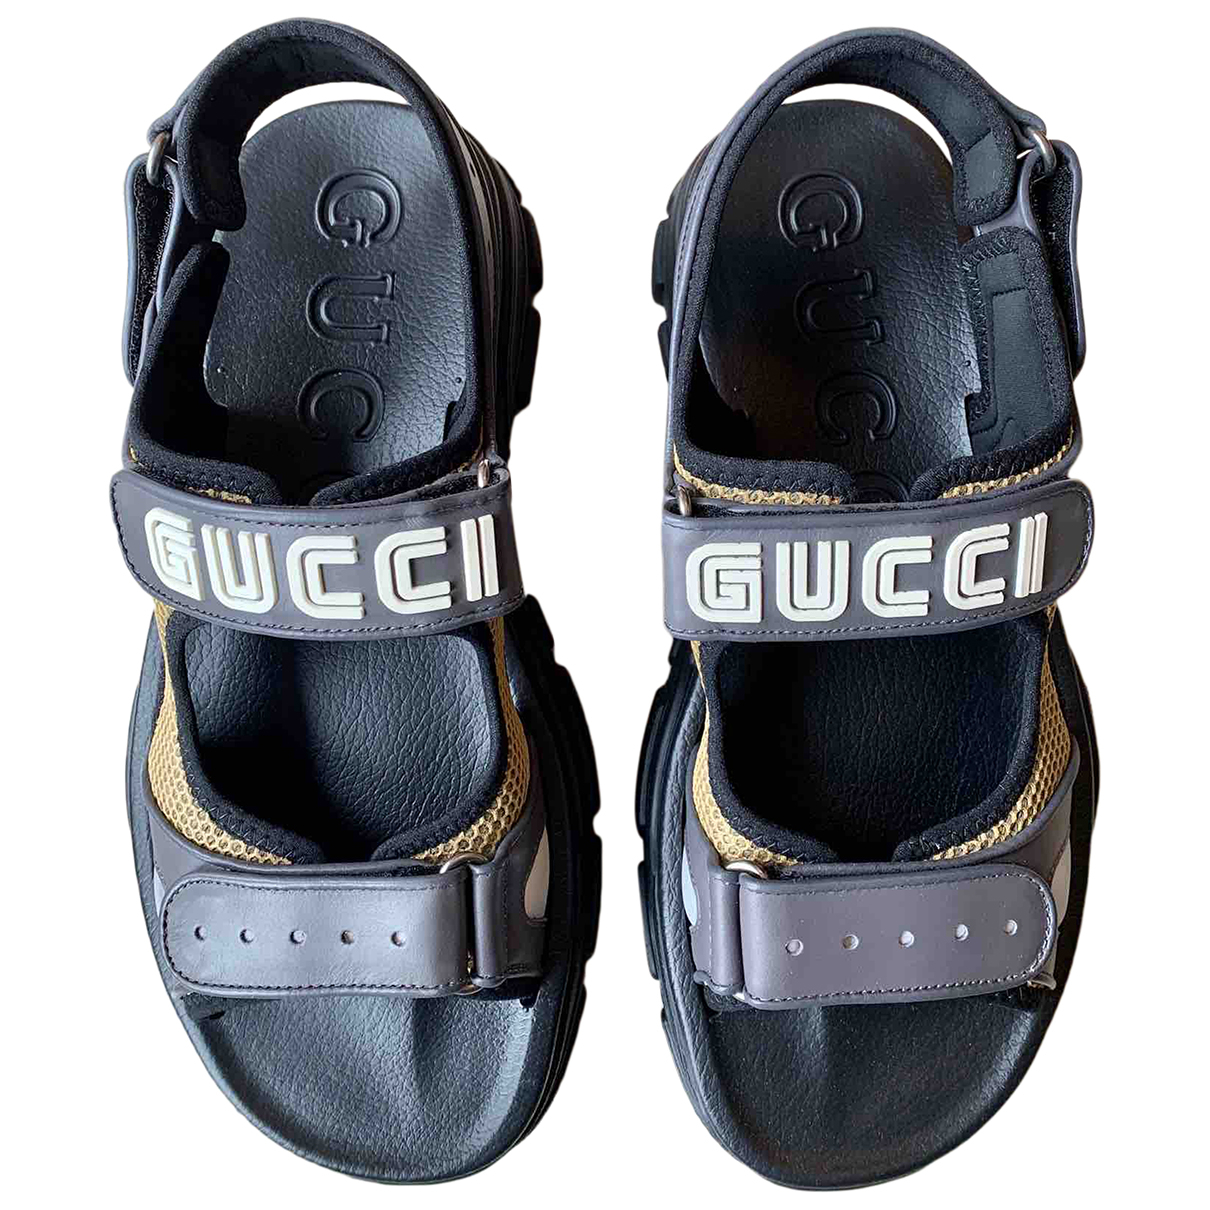 Gucci N Grey Leather Sandals for Men 9 UK